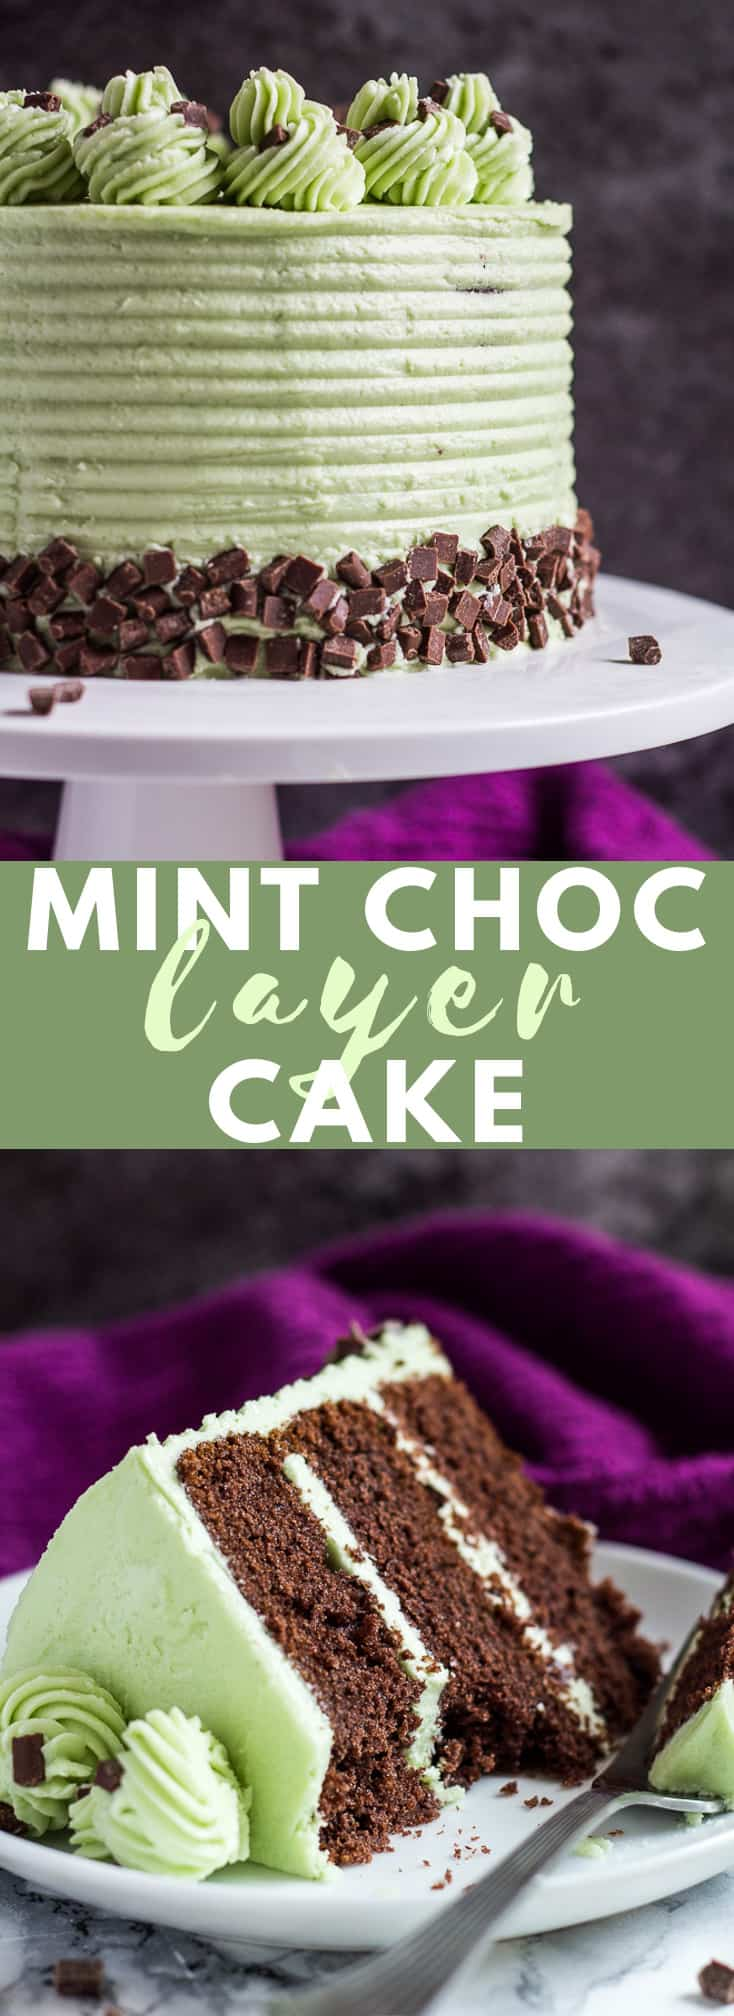 Mint Chocolate Chip Layer Cake - Deliciously moist and fluffy mint chocolate cake layered with silky Swiss meringue buttercream and chocolate chips! #mintchocolate #chocolatecake #cakerecipes